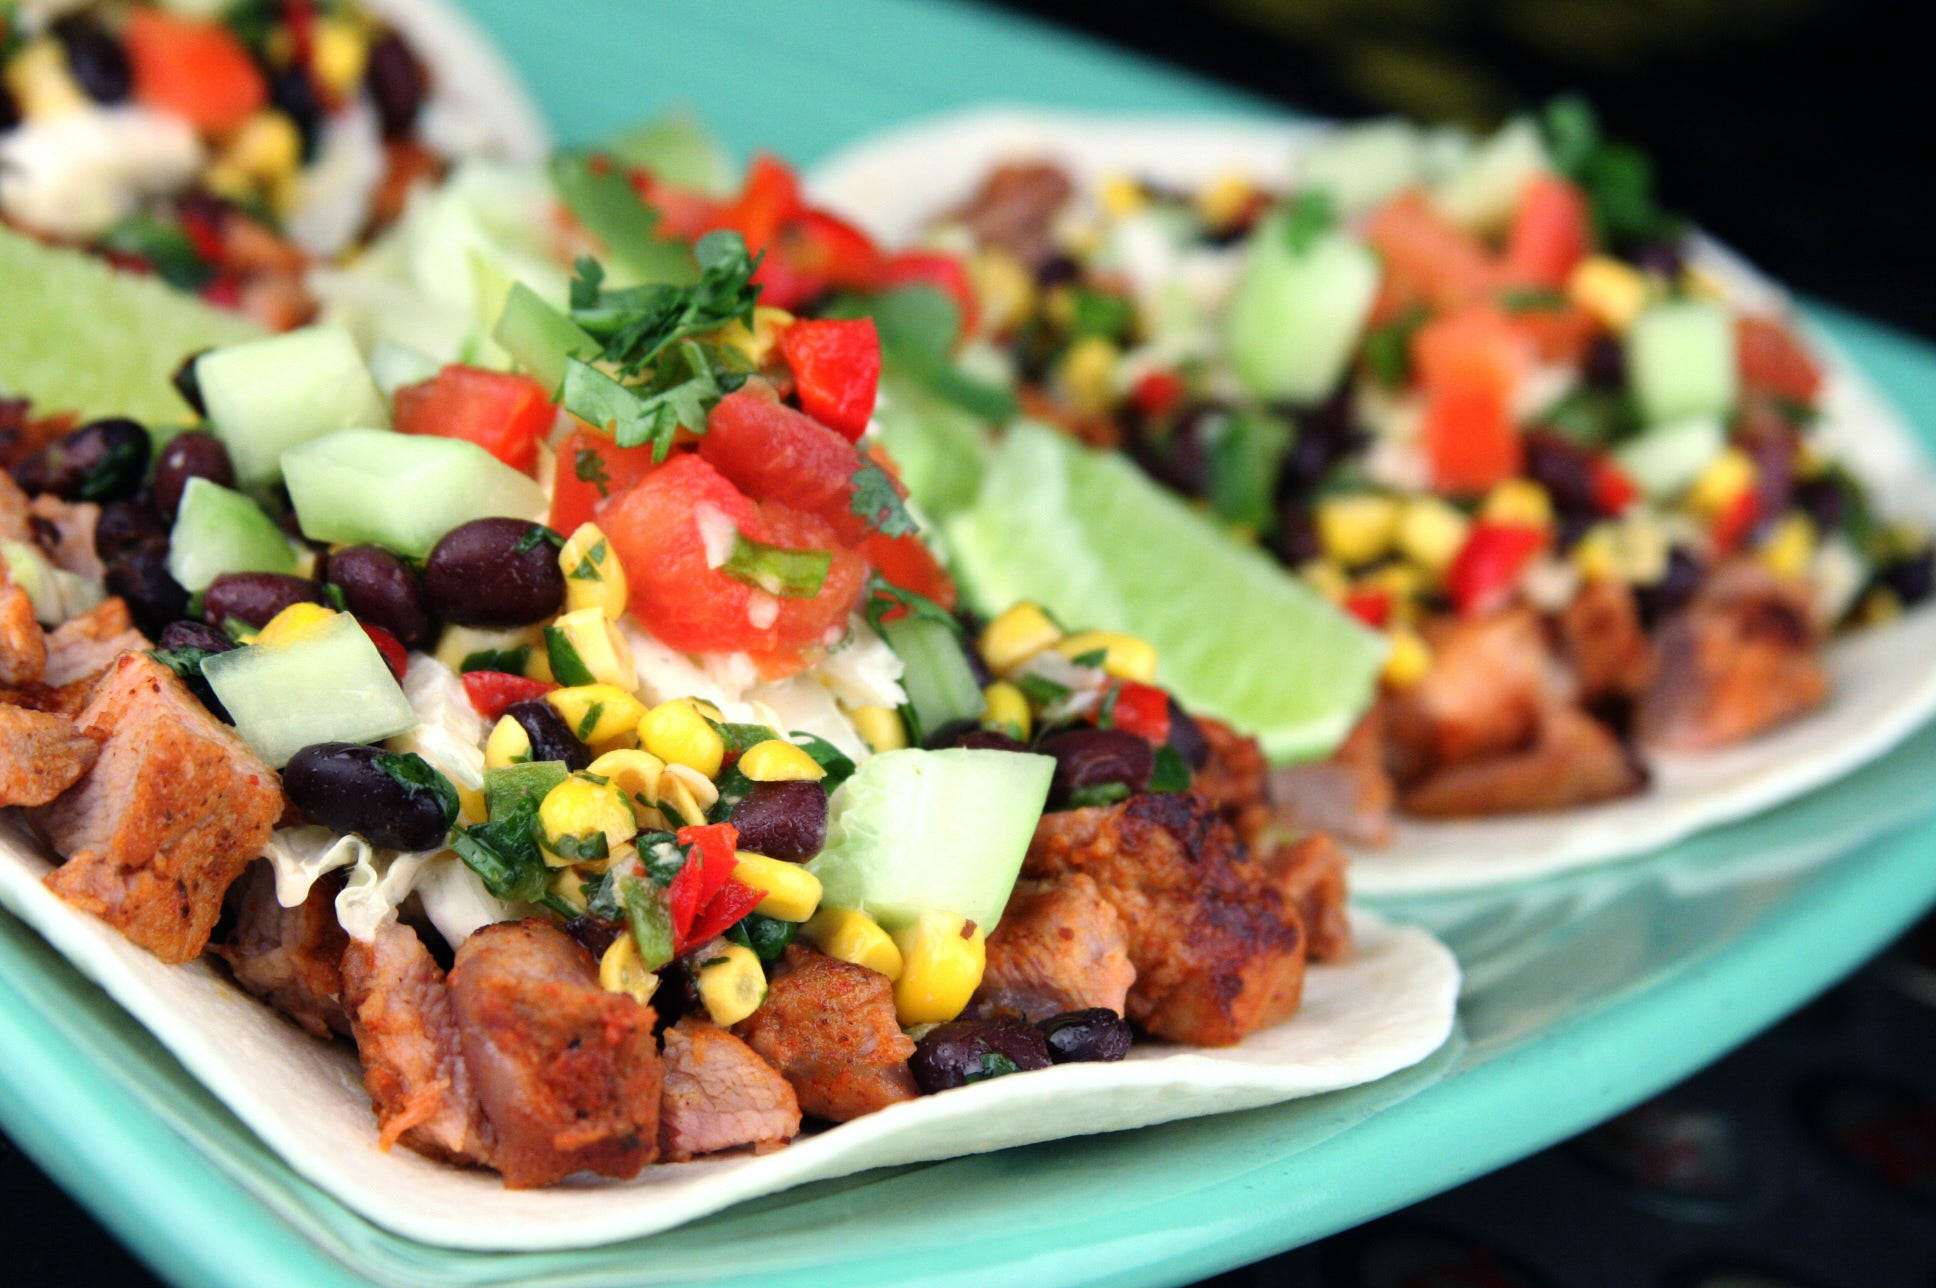 Get Your Taco Tuesday Deals At These Valley Spots